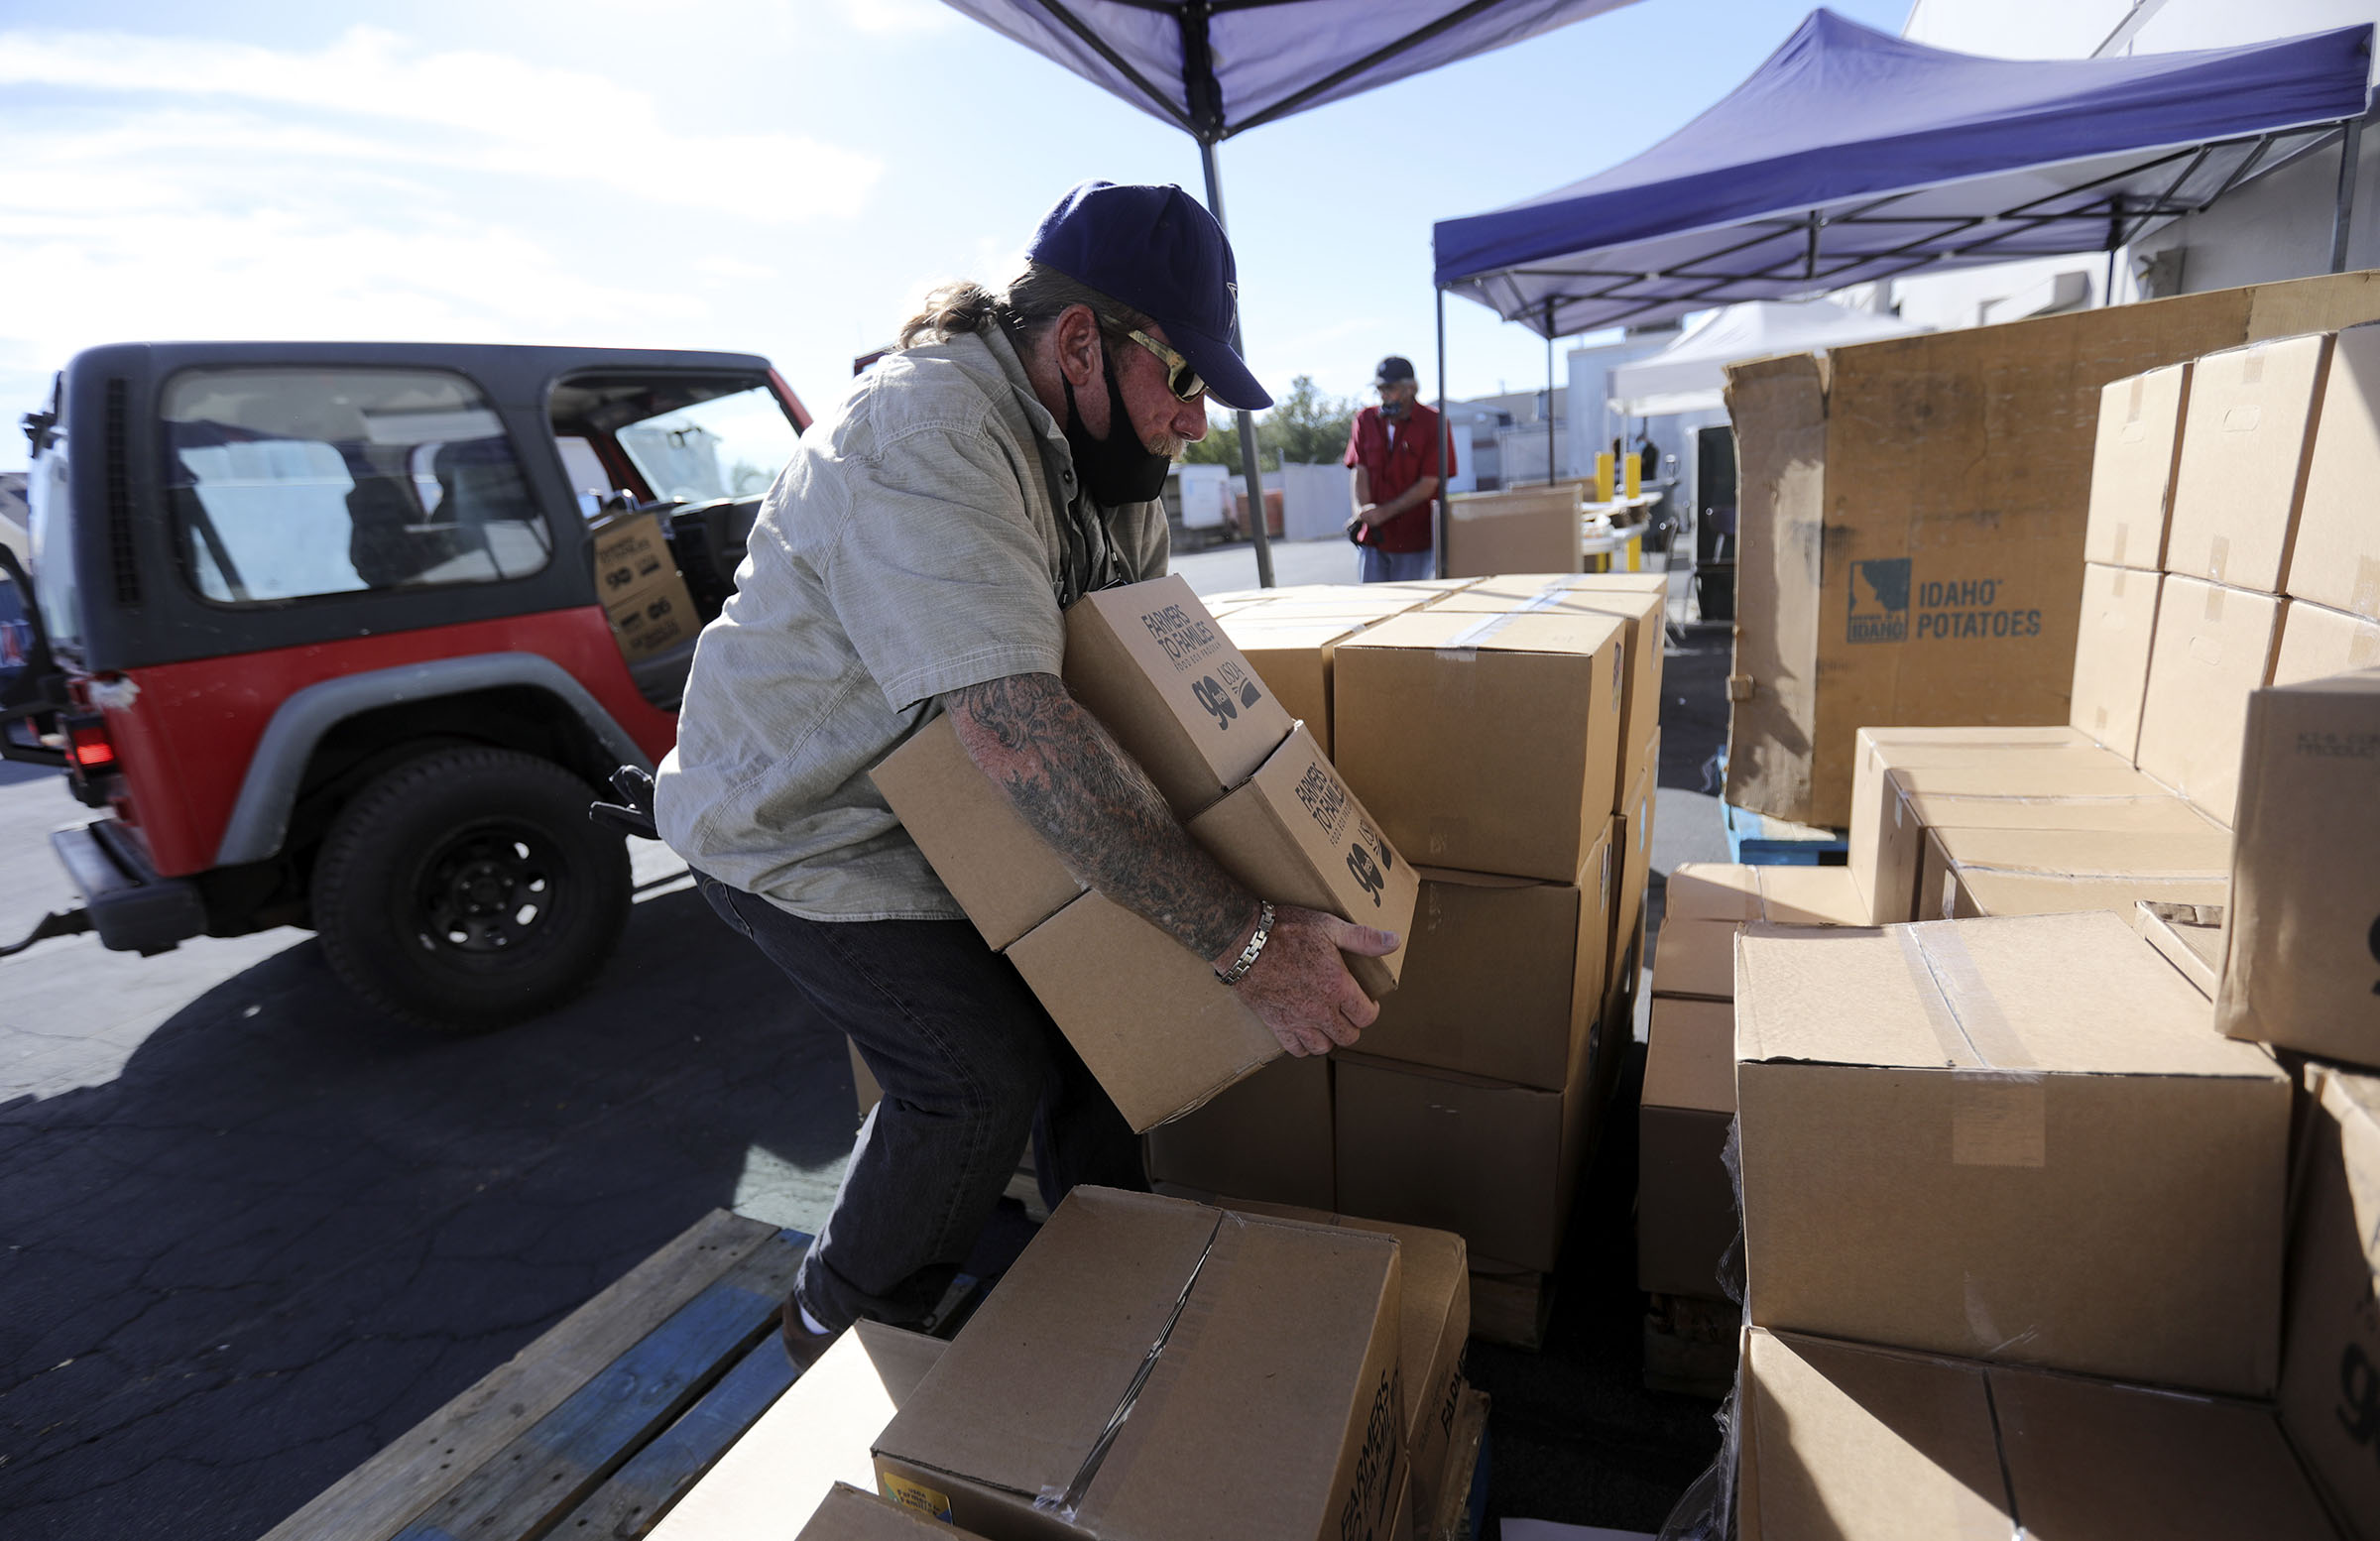 Pete Poletta loads boxes of food into a Jeep during a Take 1, Give 1 food box giveaway out outside of the Salt Lake City Mission offices in Salt Lake City on Tuesday, Oct. 13, 2020. Those who are struggling to feed their families could stop by and pick up a food box for themselves and also pick one up for a friend or neighbor in need. It was expected that 1,300 food boxes containing meat, veggies, fruit, and dairy would be given away.